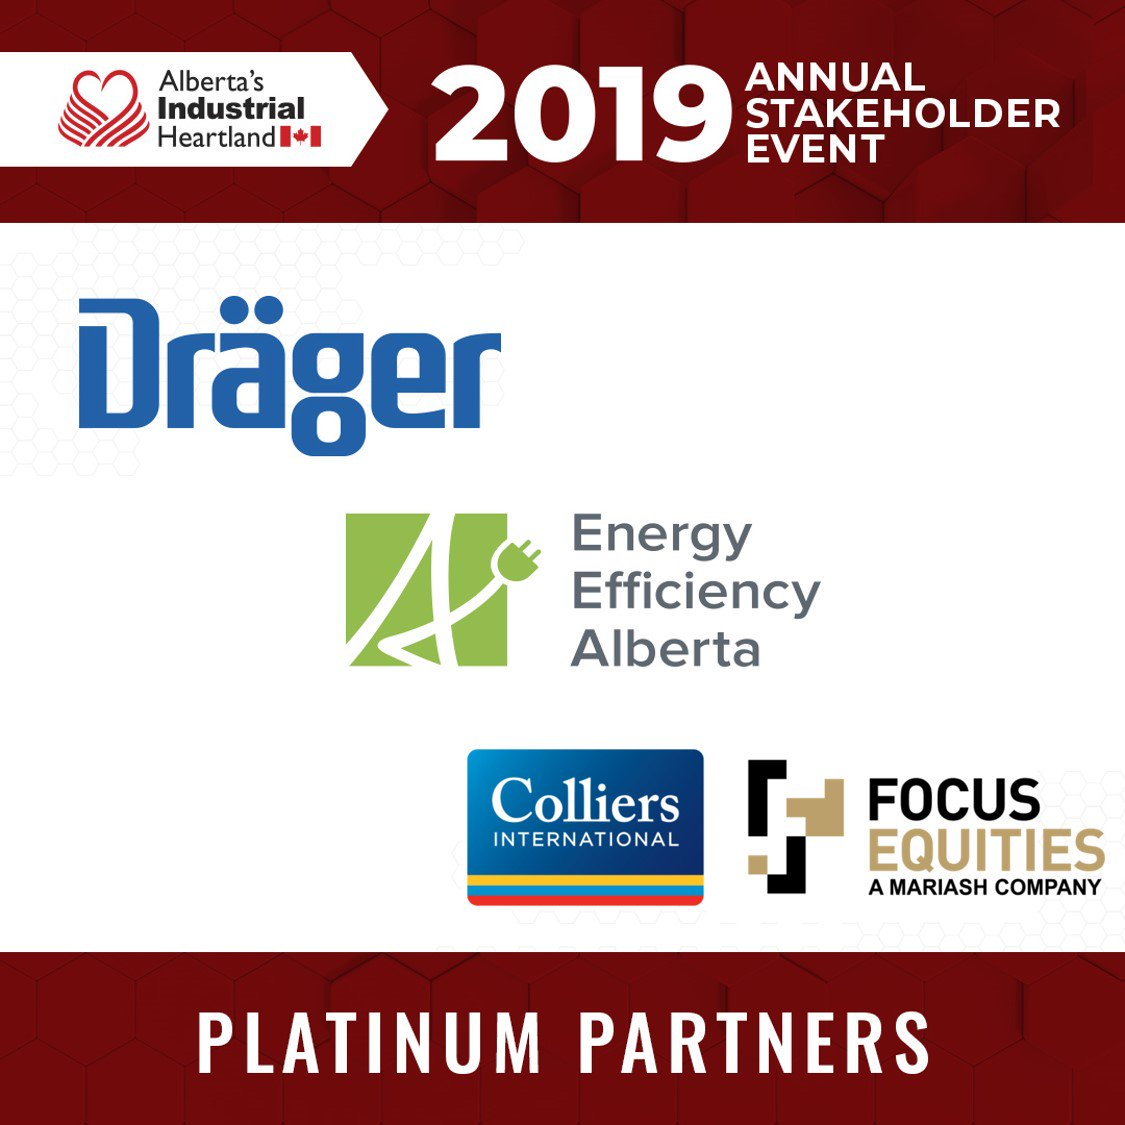 With support from our Platinum Sponsors, tomorrow AIHA will host 1,000 delegates at our Annual Stakeholder Event. This event has nearly doubled in size in a few short years & we look forward to an exciting lineup of speakers & presentations!  #investment #abenergy #petrochemicals